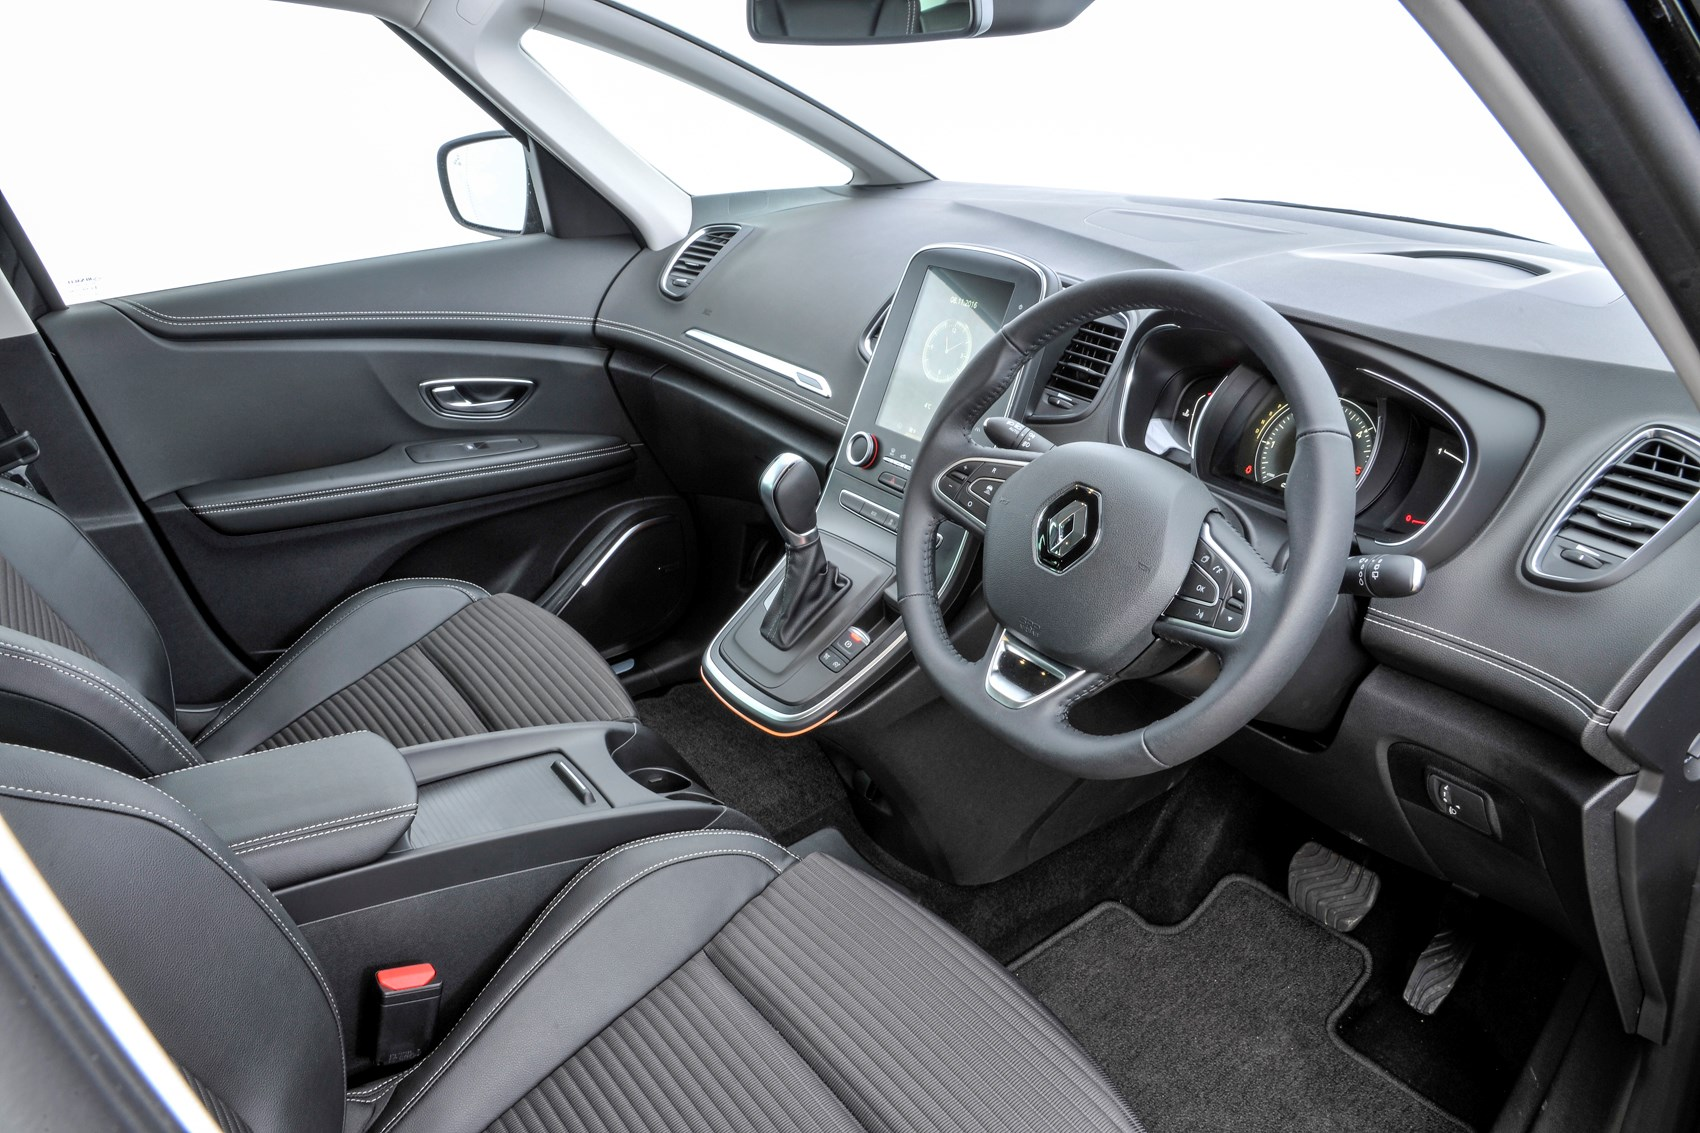 renault scenic 2007 interior the image